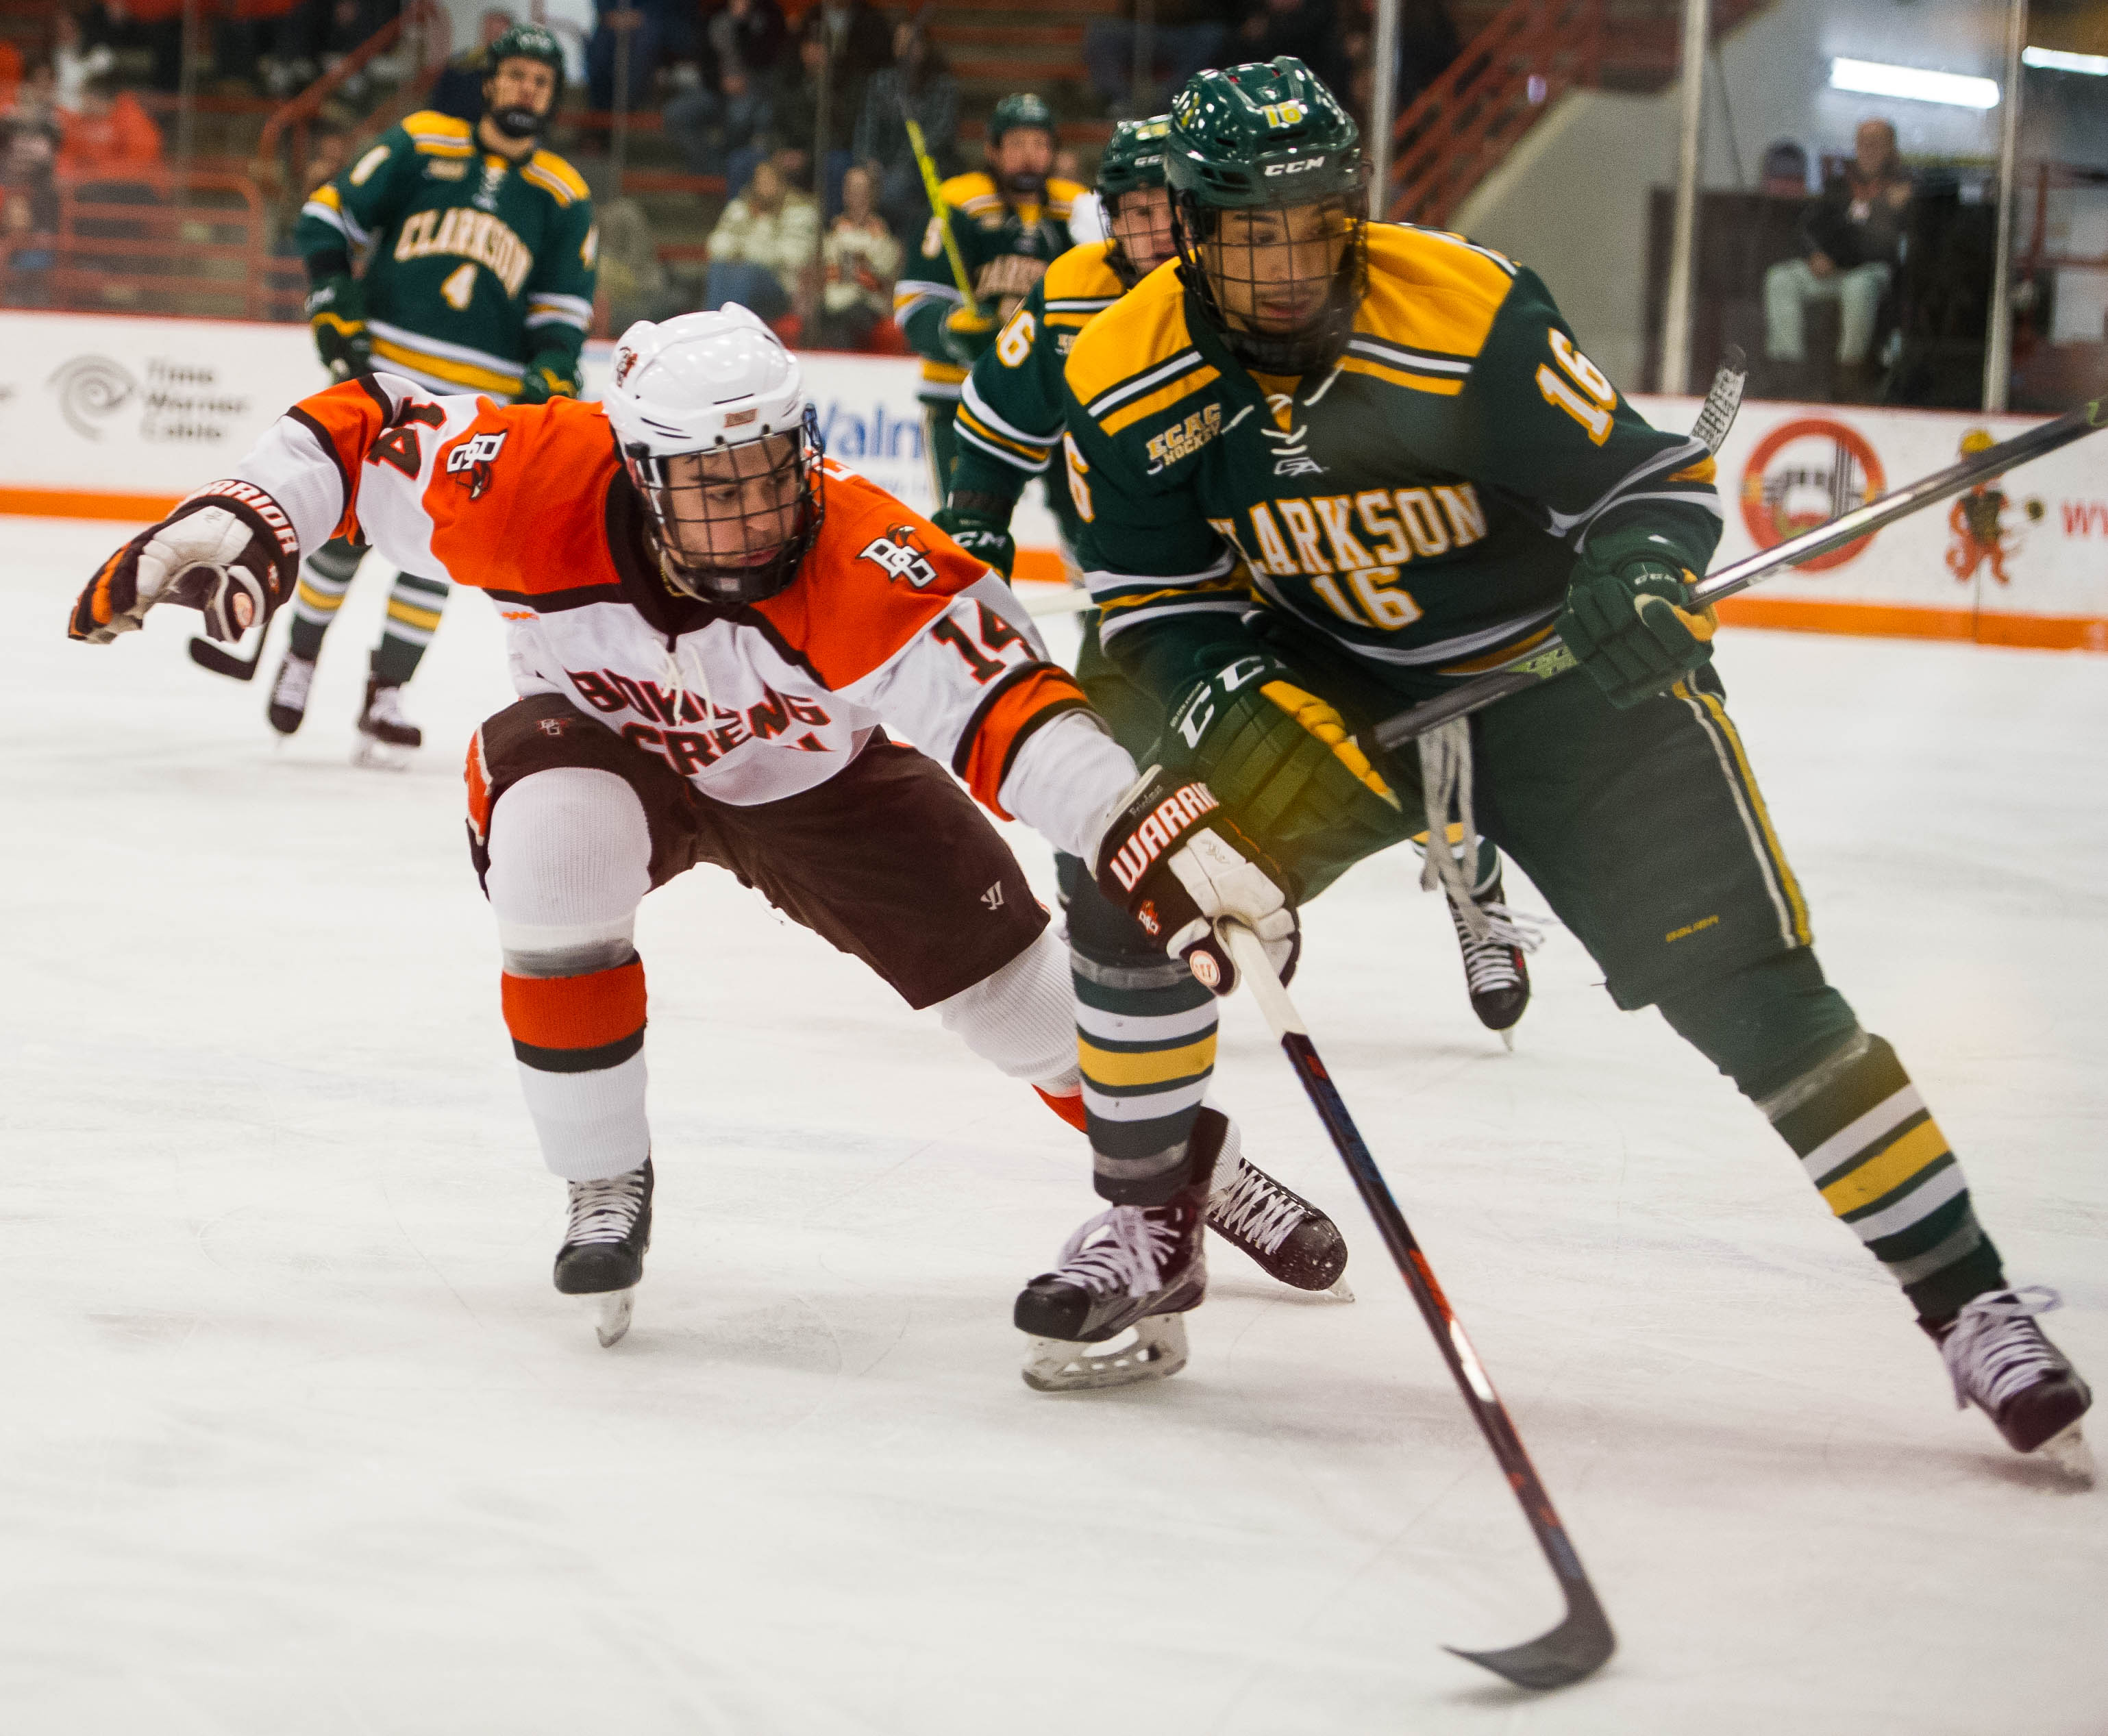 Home streak ends in 3-2 loss to Clarkson